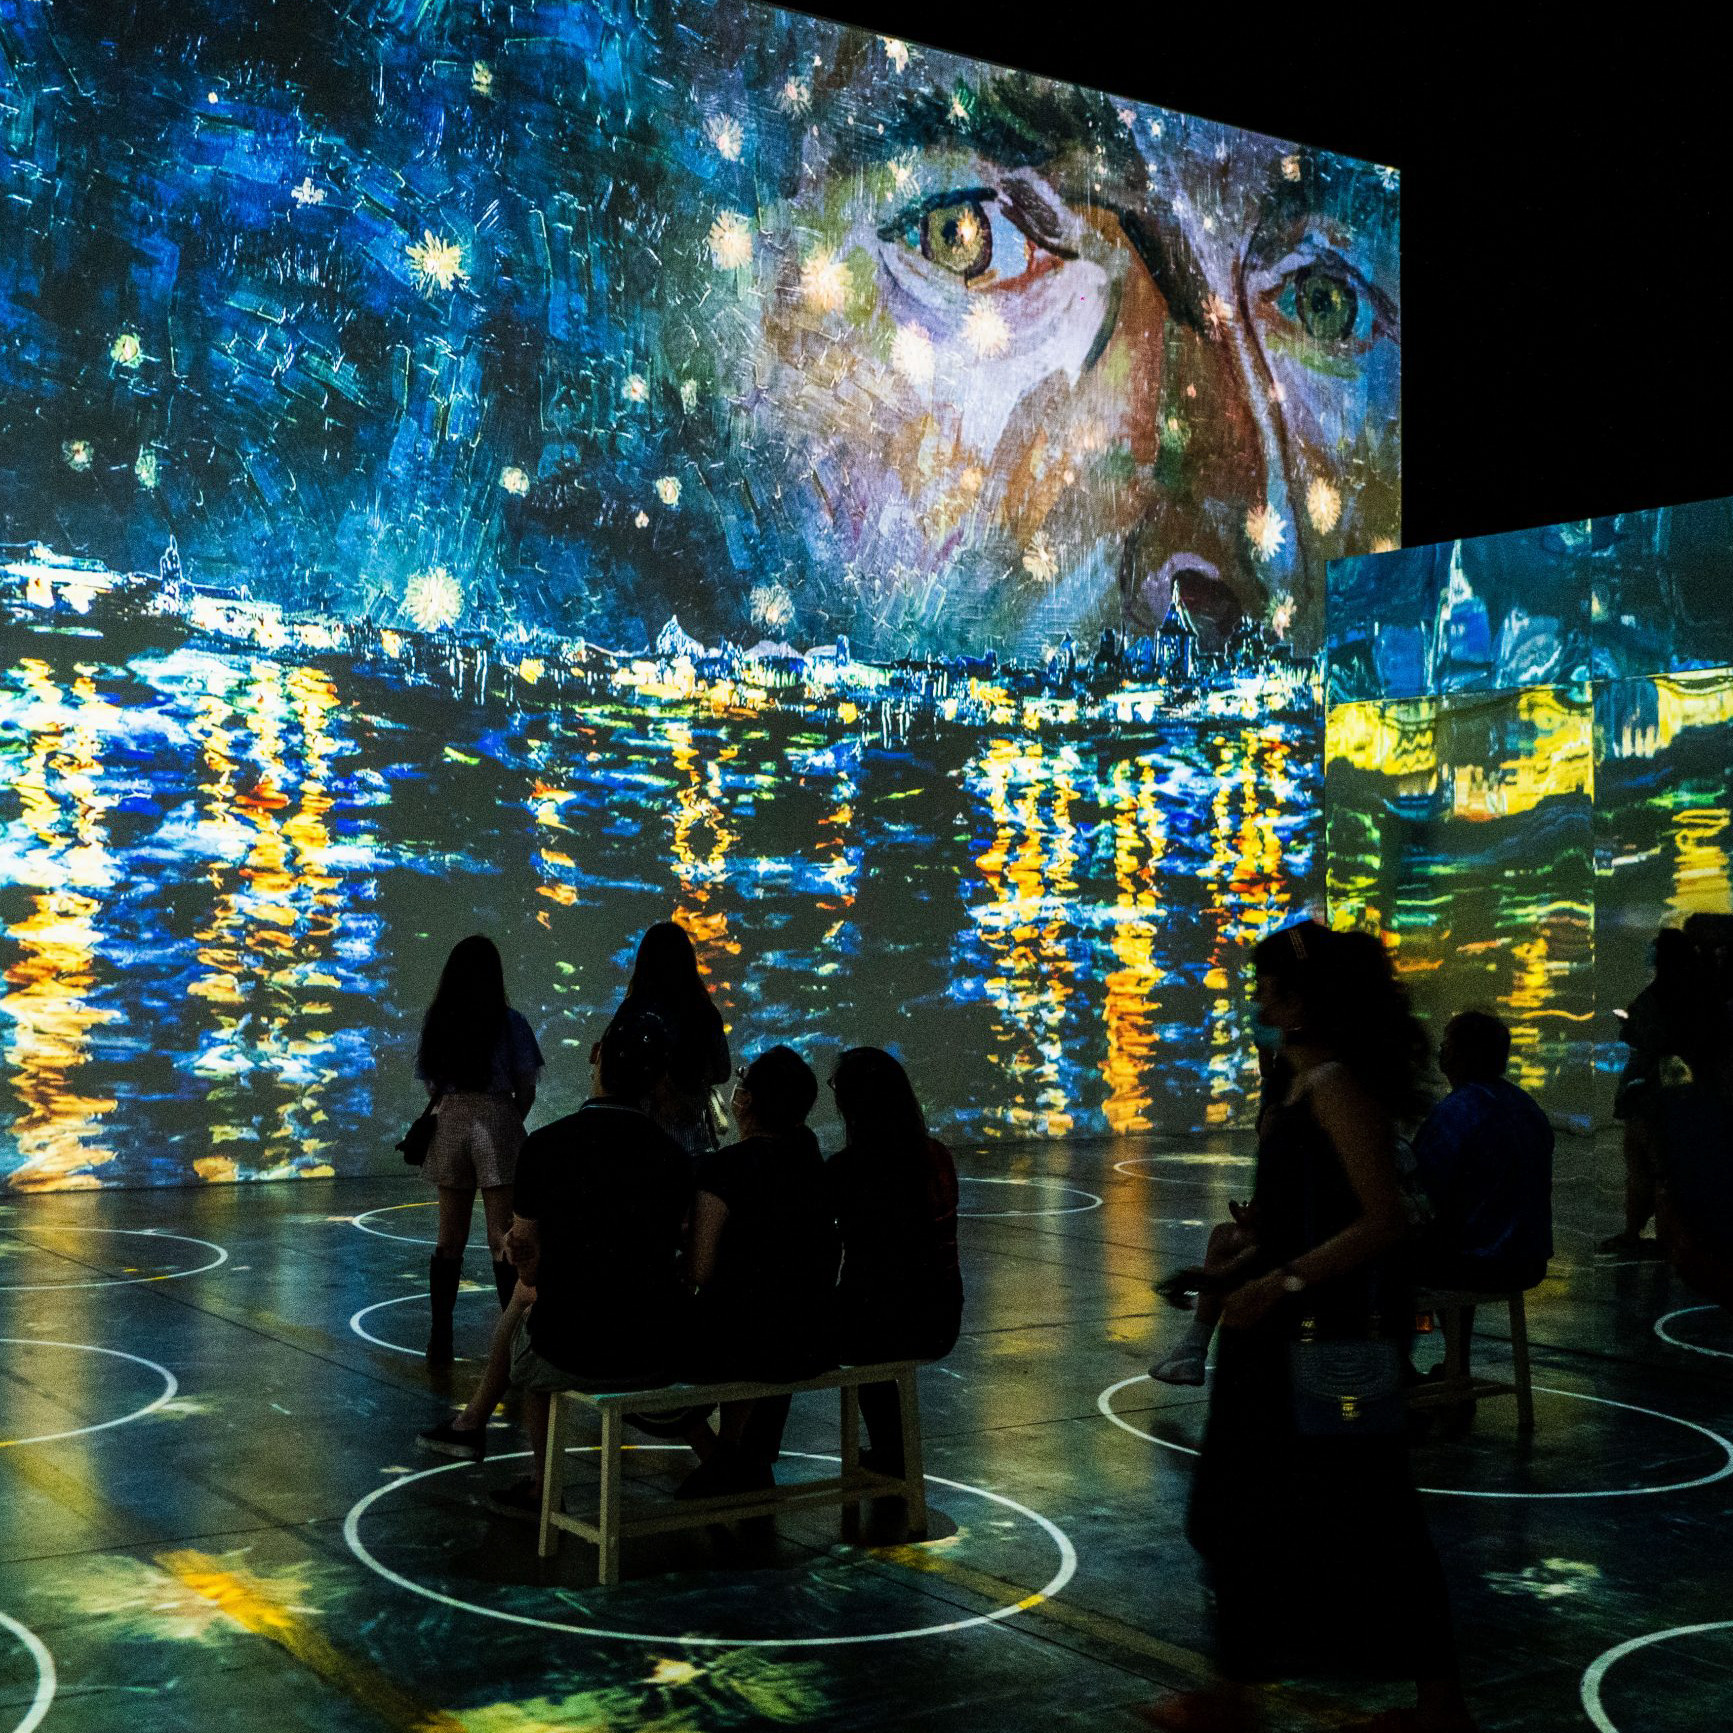 The Immersive Van Gogh Experience, coming to Chicago.